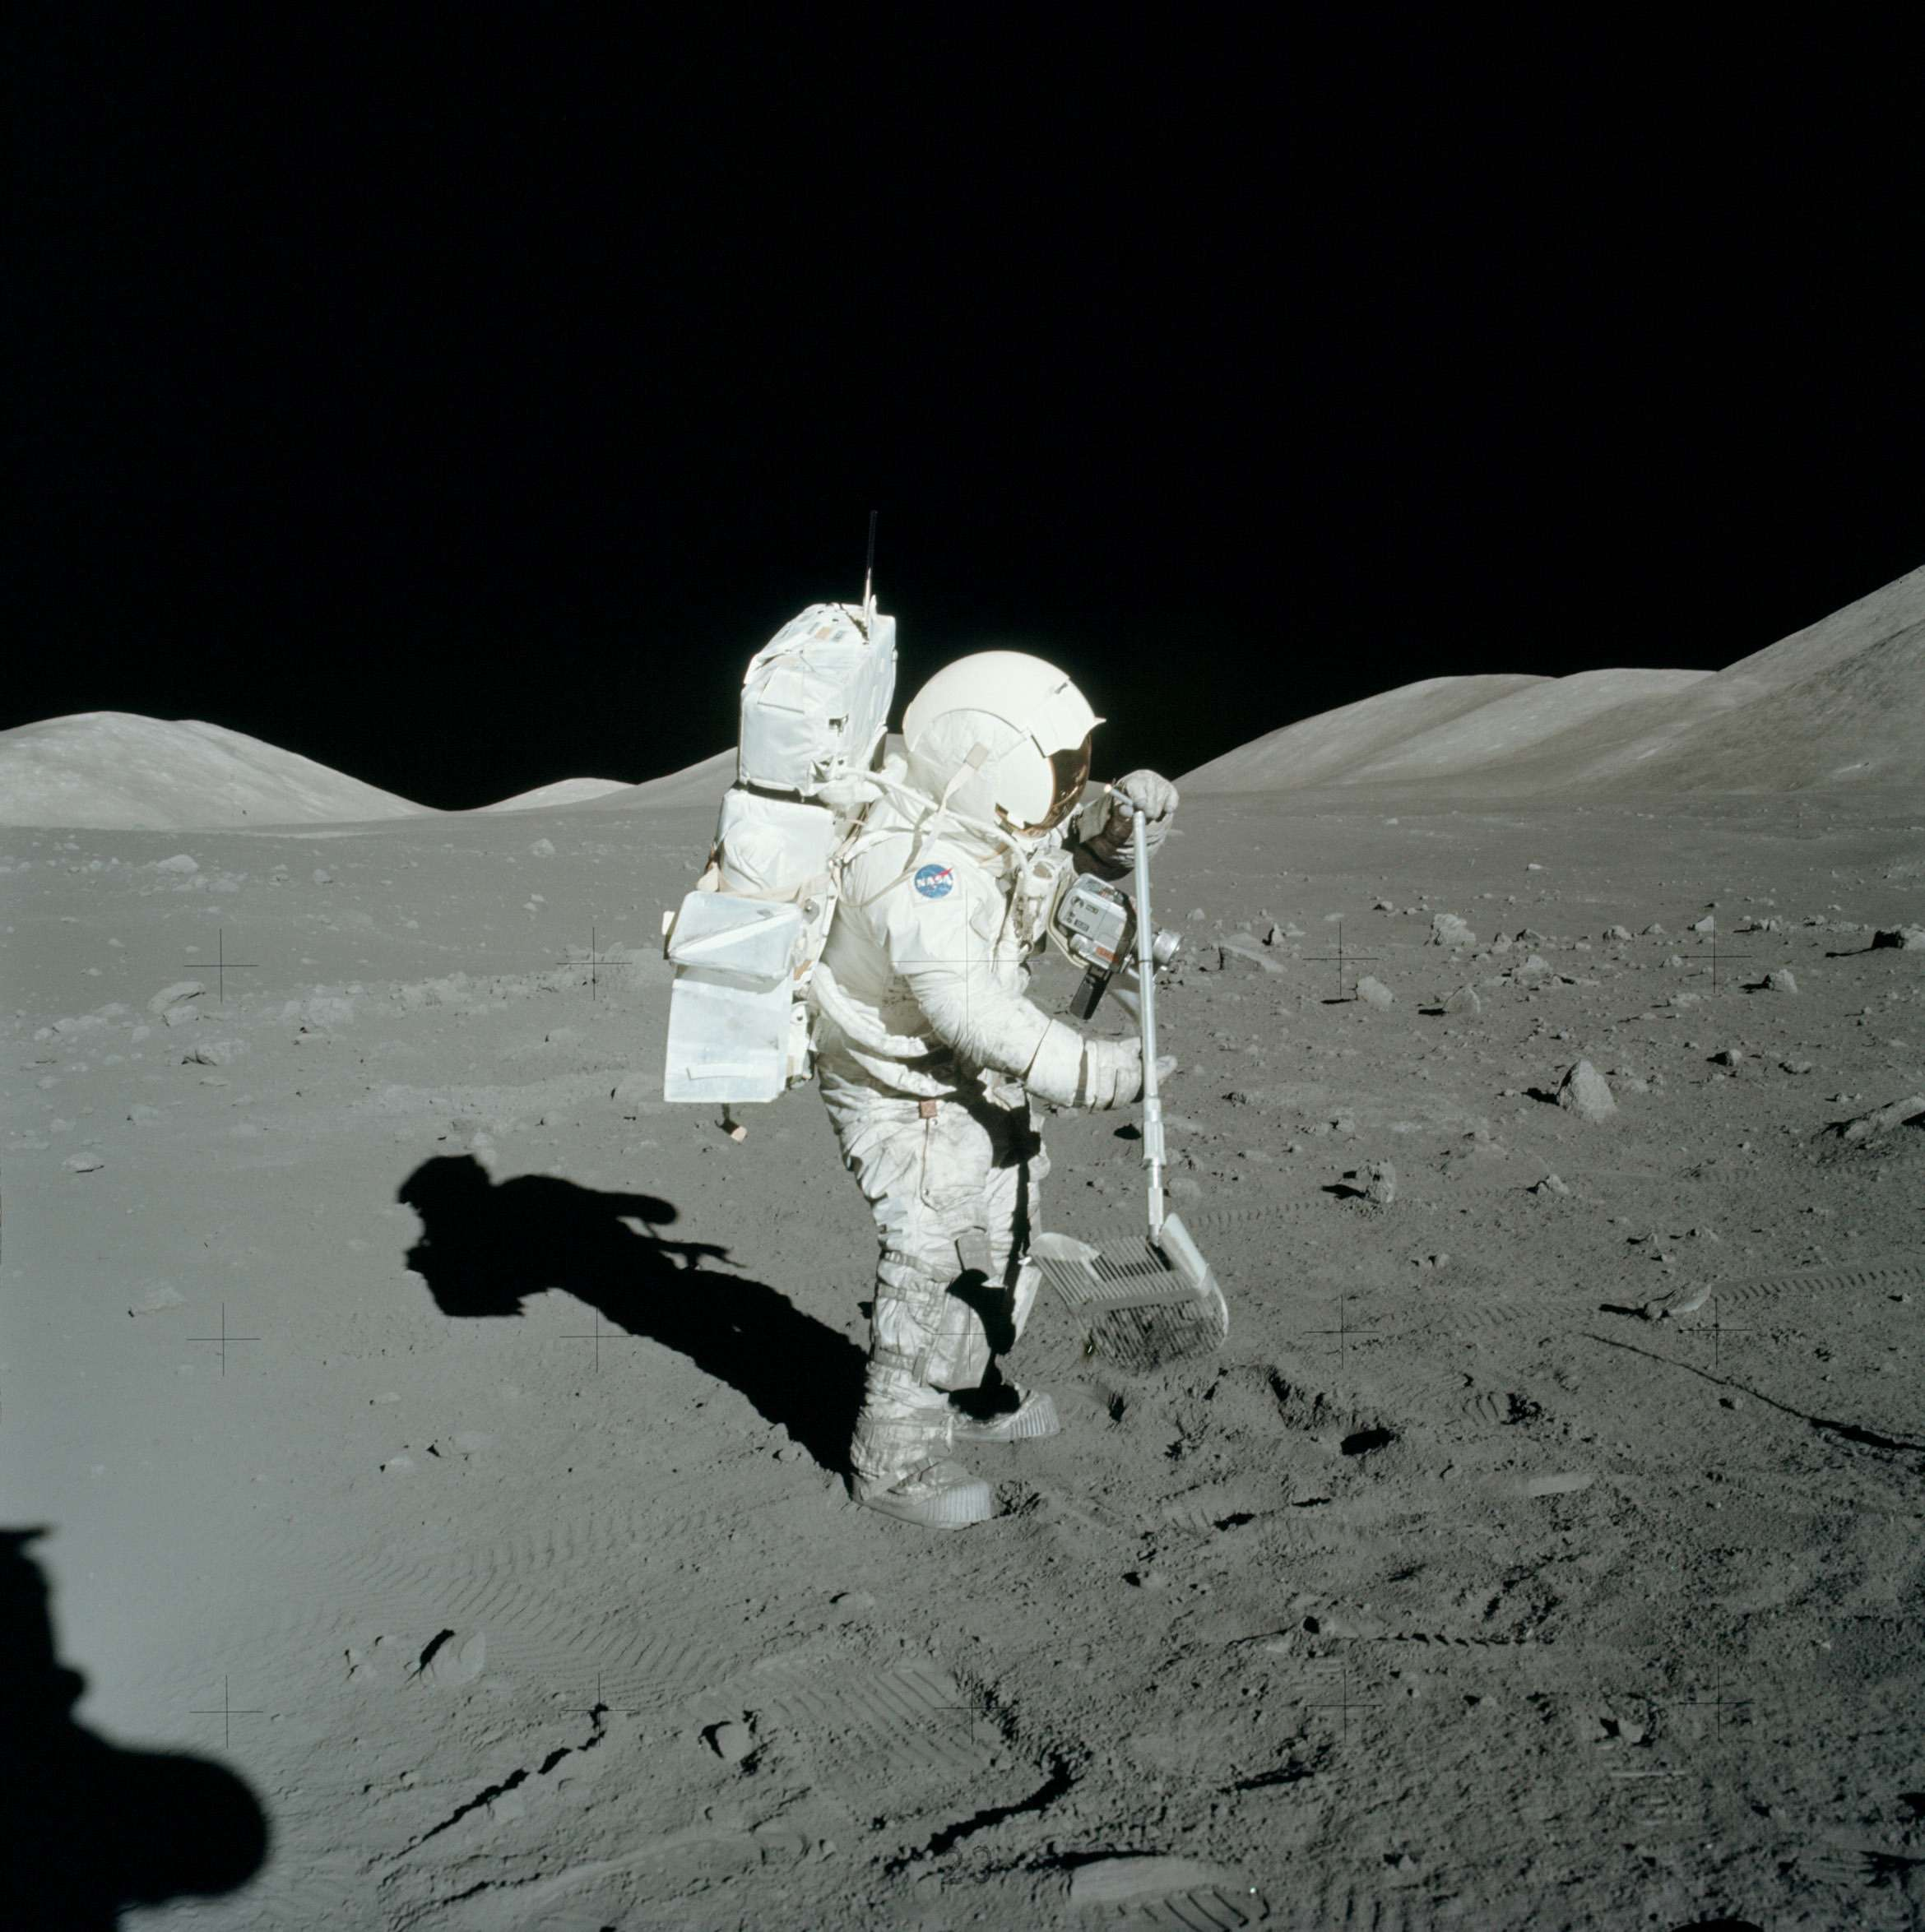 Why Did Apollo Lunar Samples Have Amino Acids In Them?